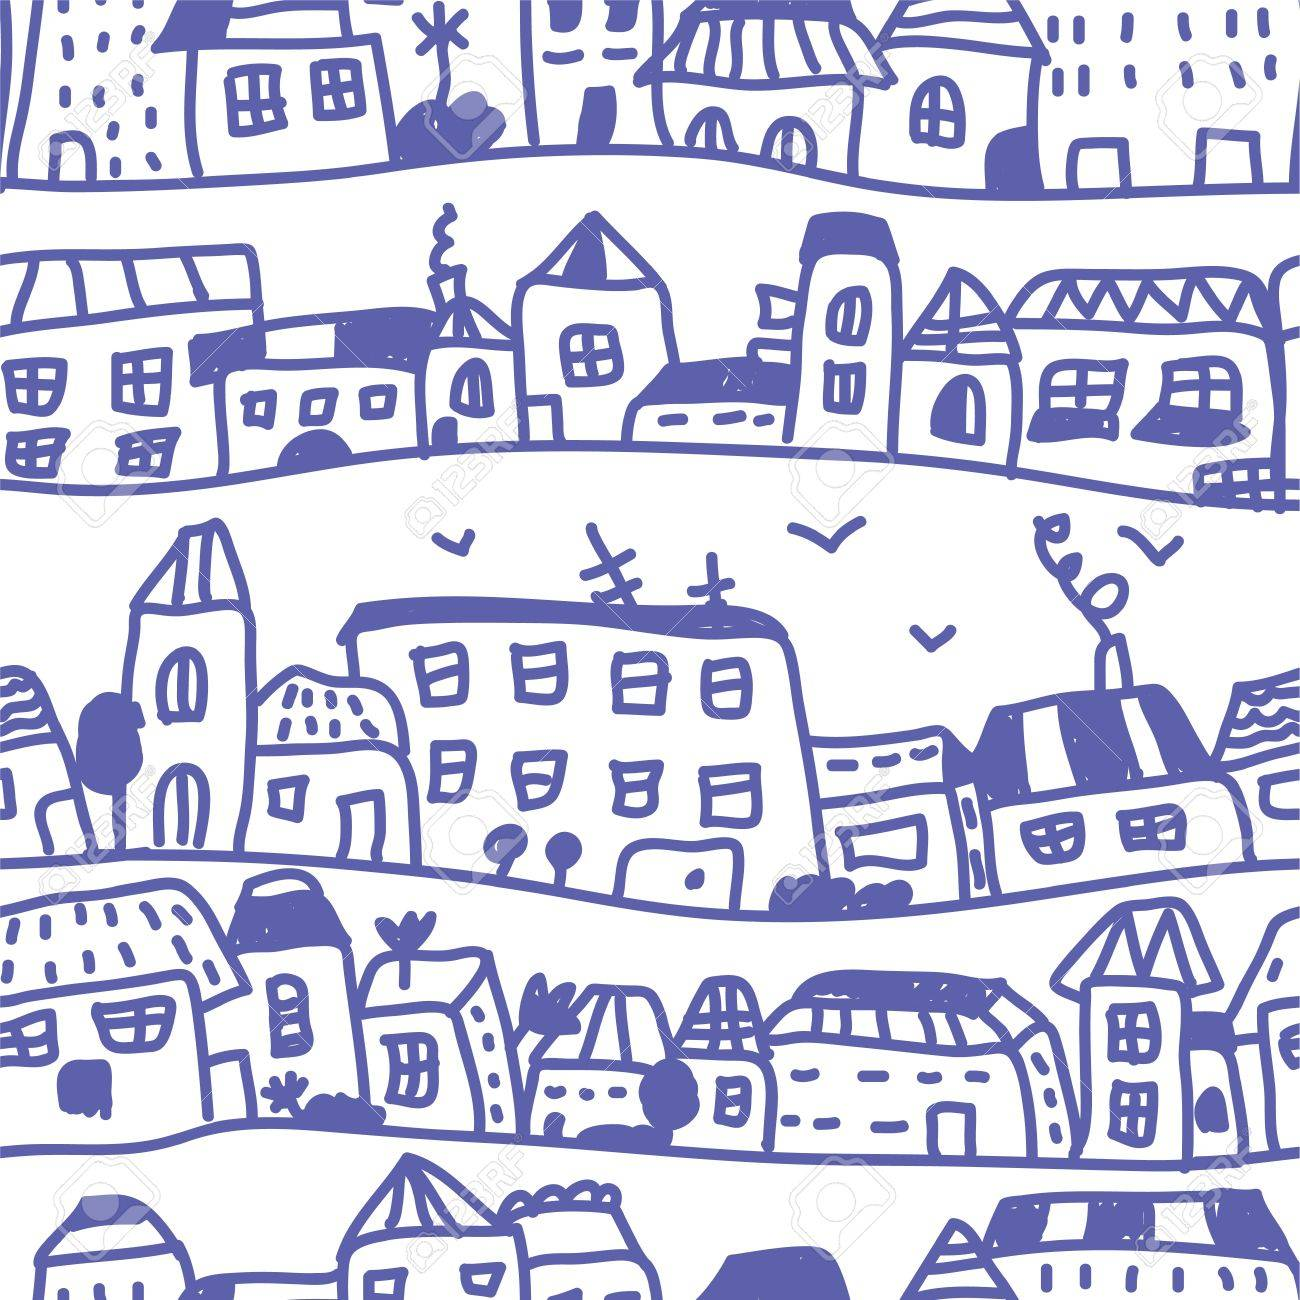 Houses seamless pattern doodle design - 15567275